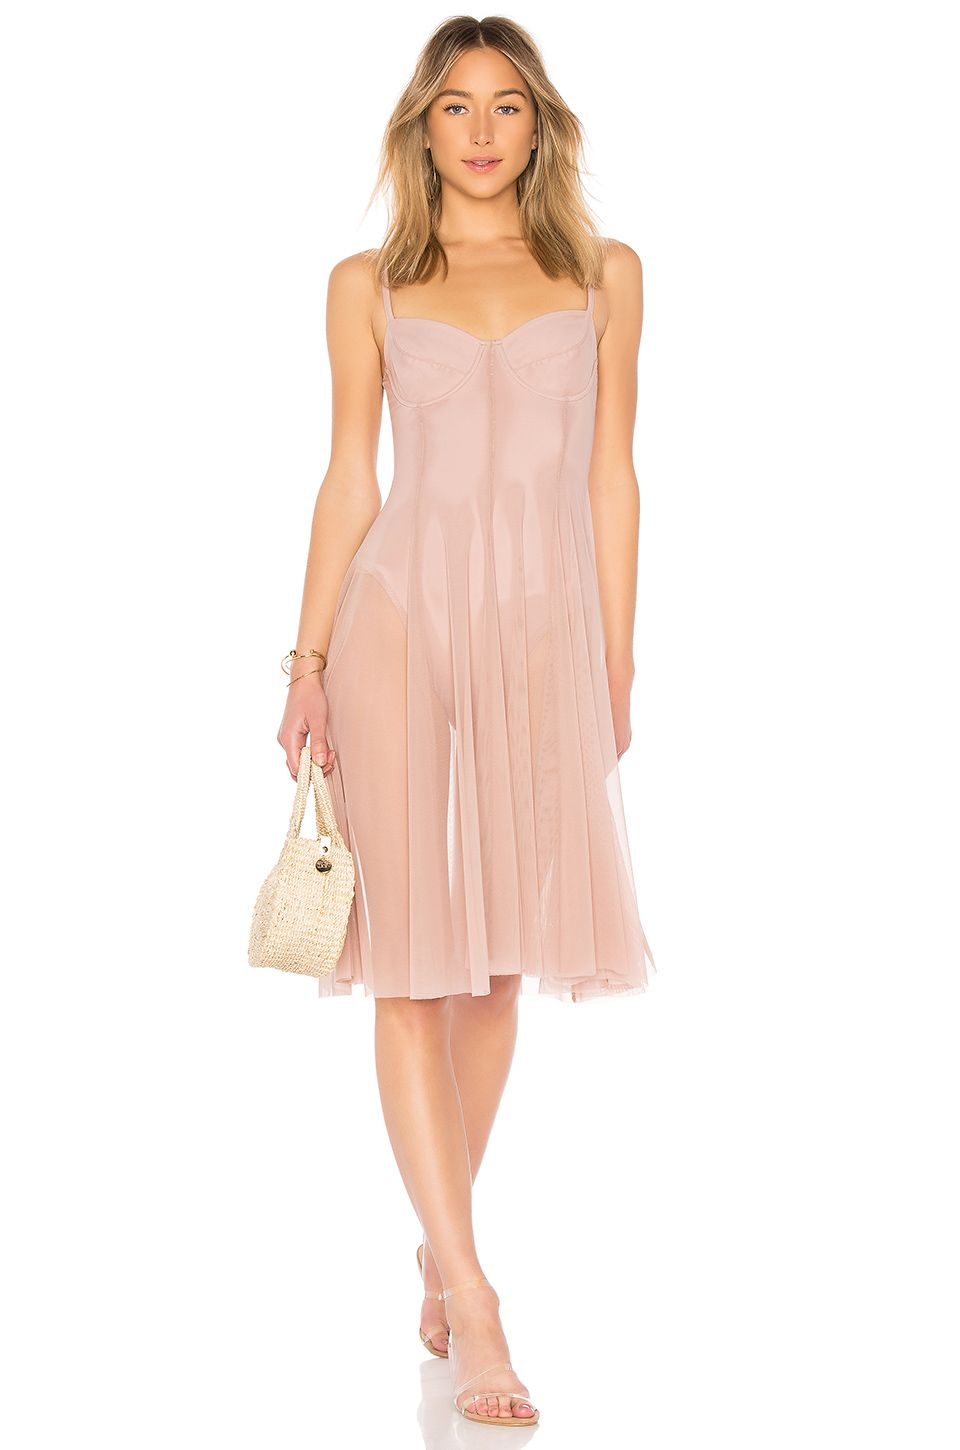 066e90efeb85 #REVOLVE Norma Kamali, Top Clothing Stores, Modest Swimsuits, Summer  Dresses, Formal